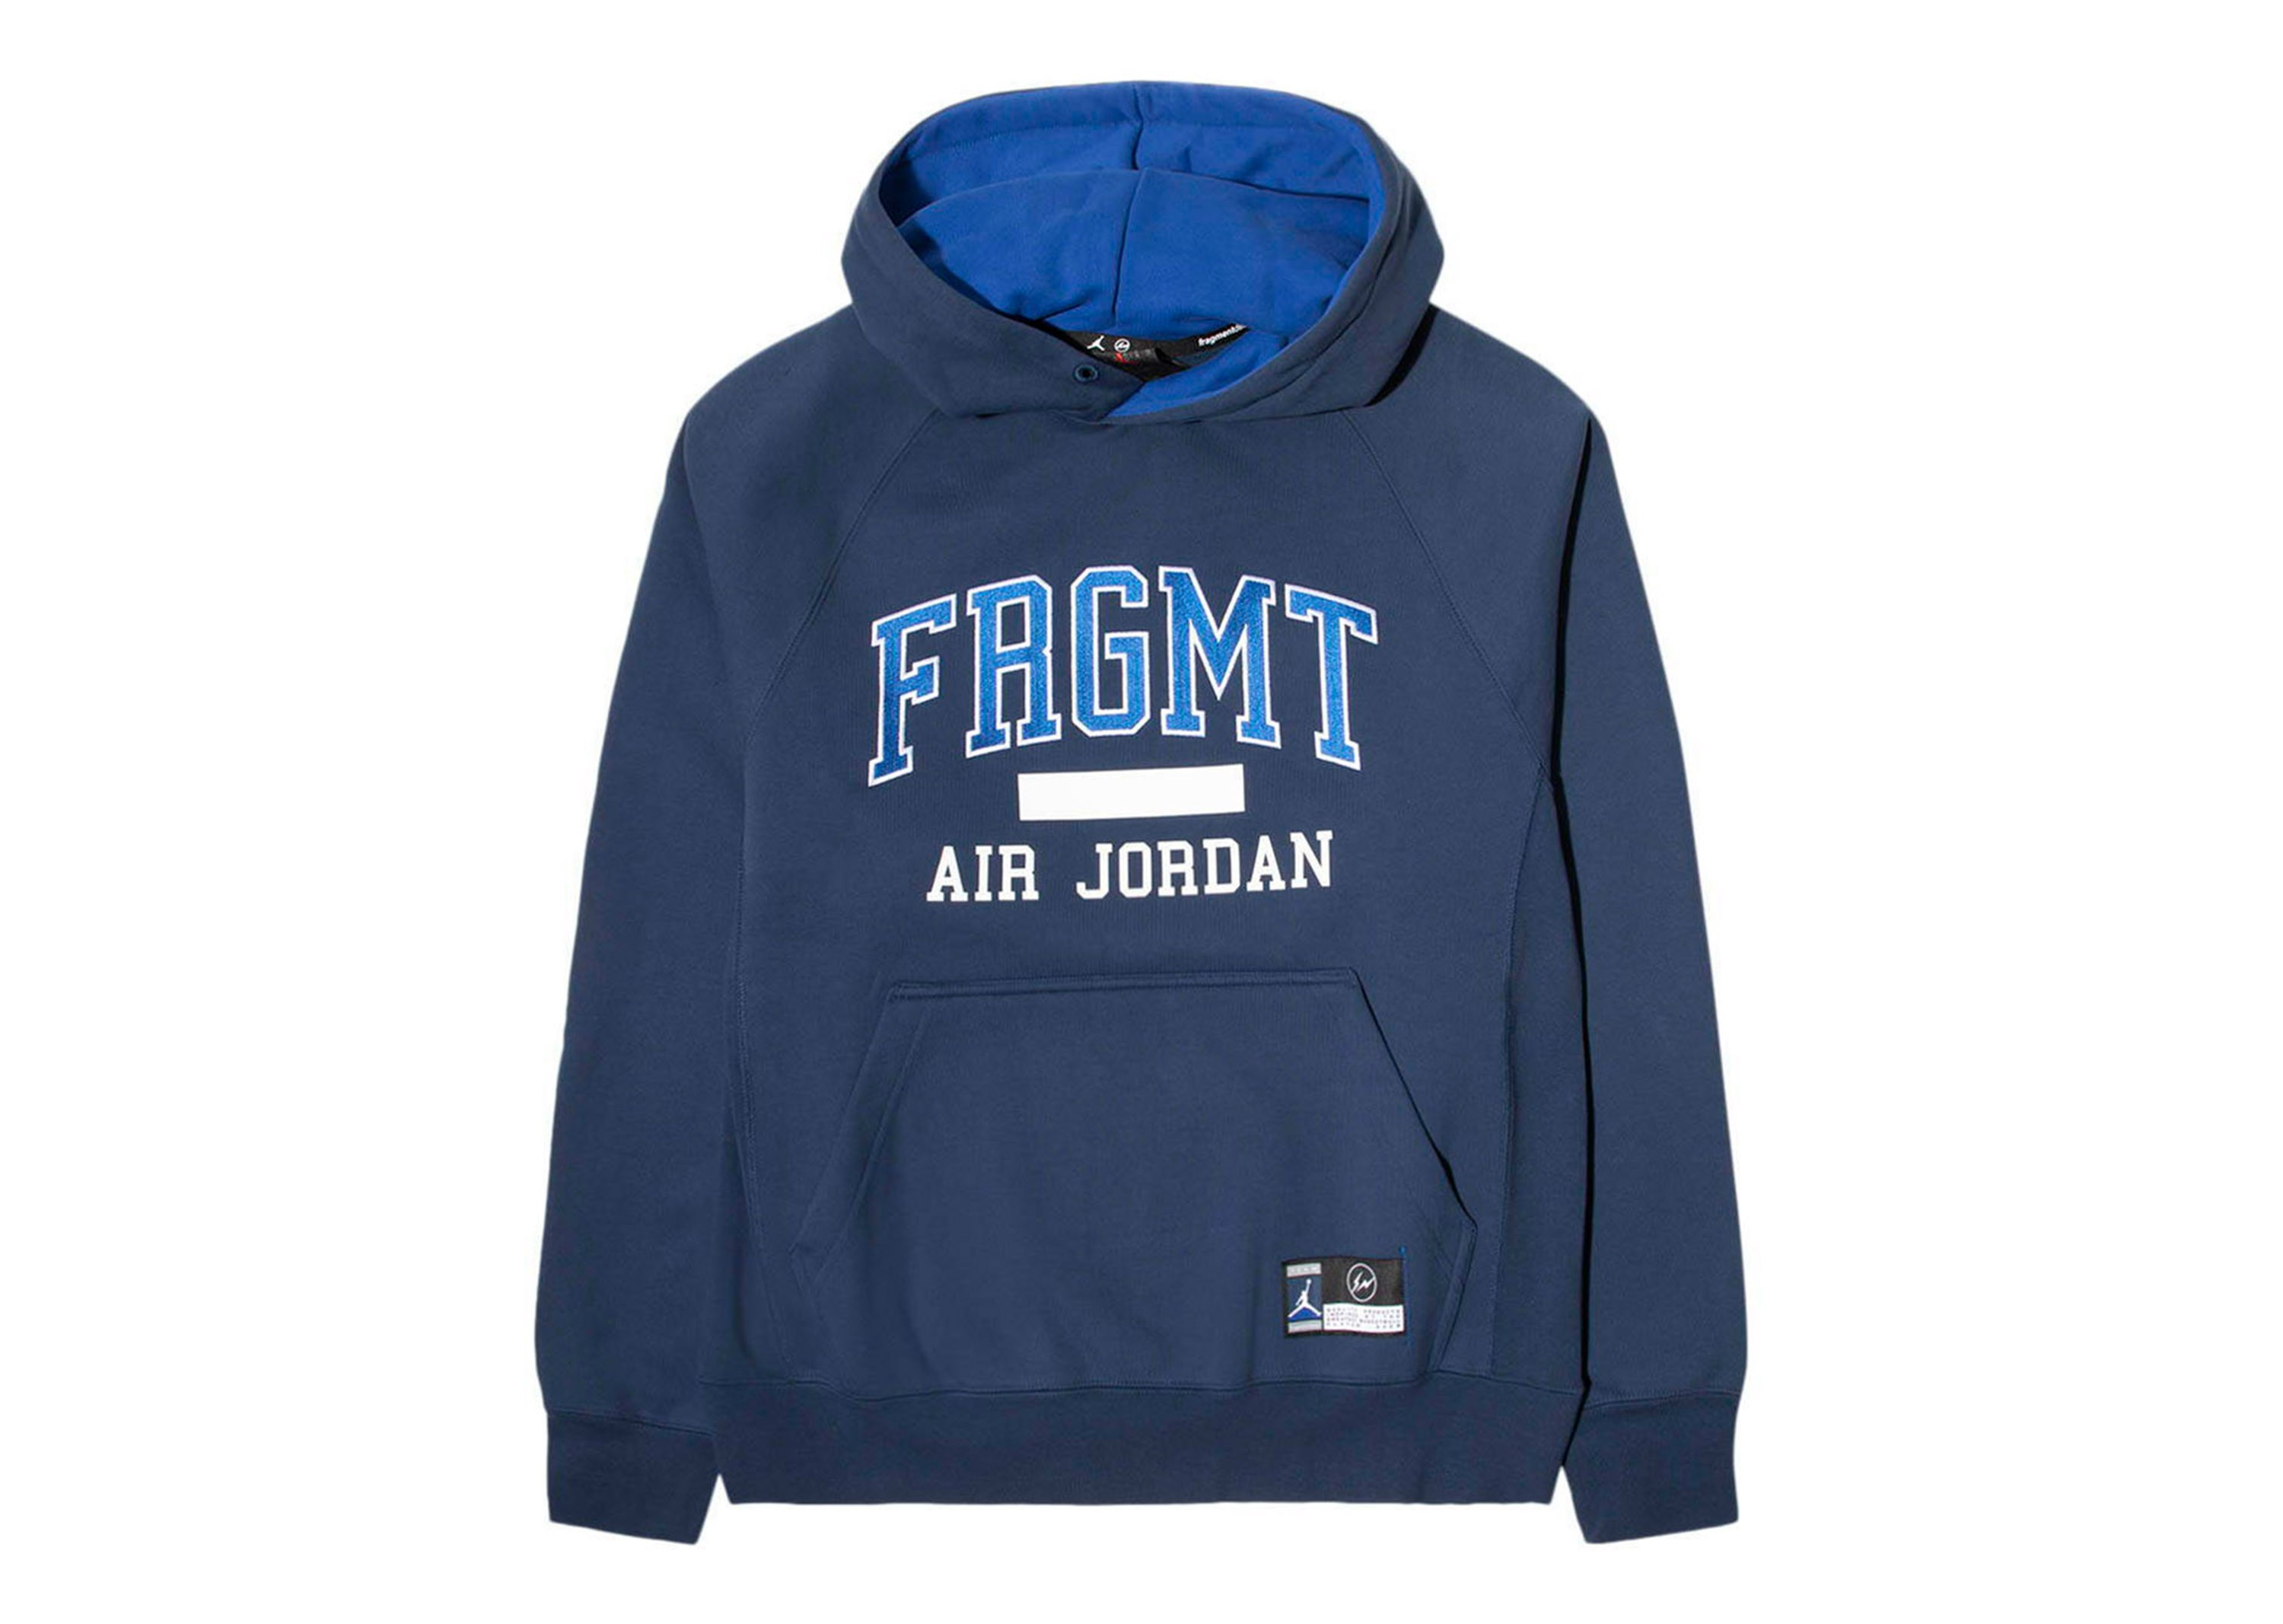 FRAGMENT_APPAREL__0004_Jordan_Fragment_Apparel_0004_frag hoodie 1